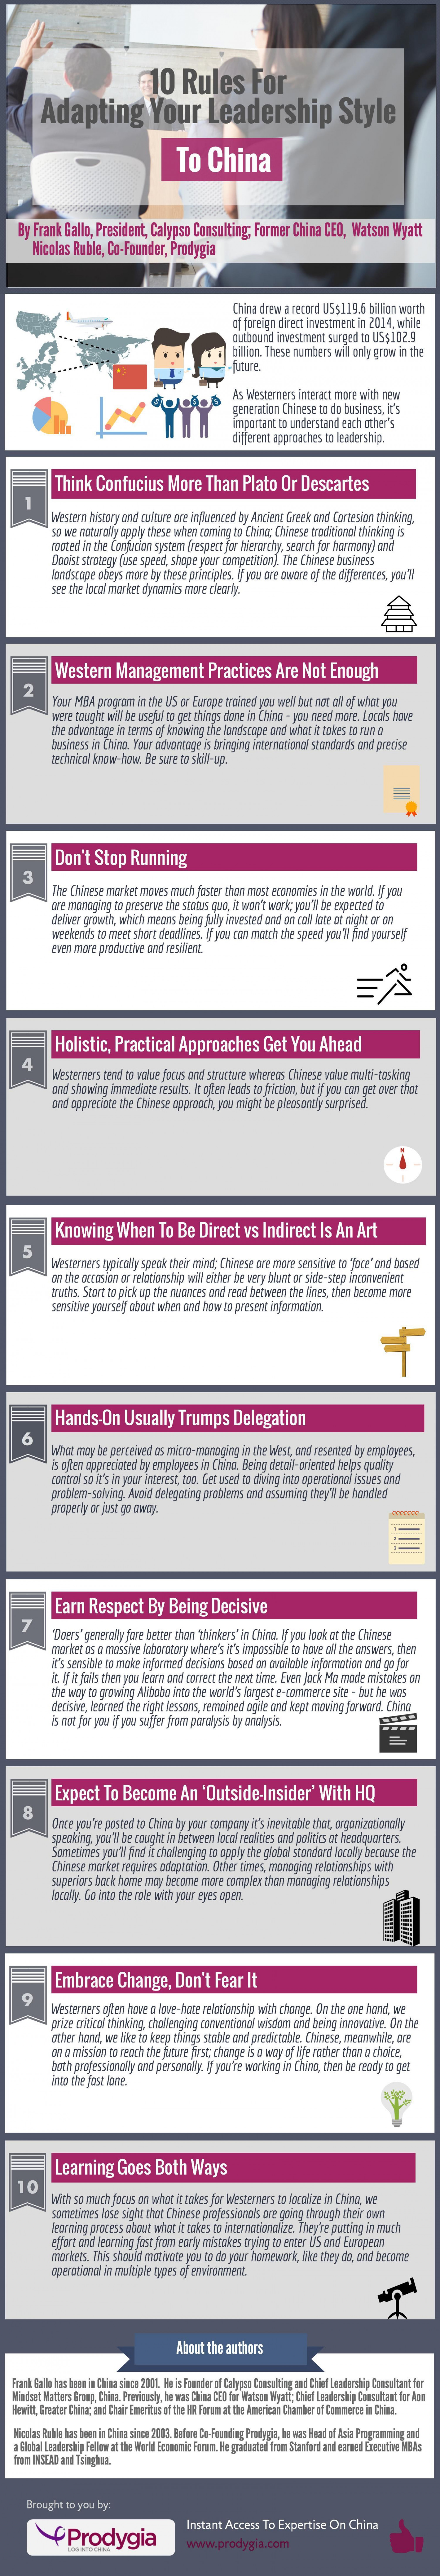 10 Rules For Adapting Your Leadership Style To China Infographic